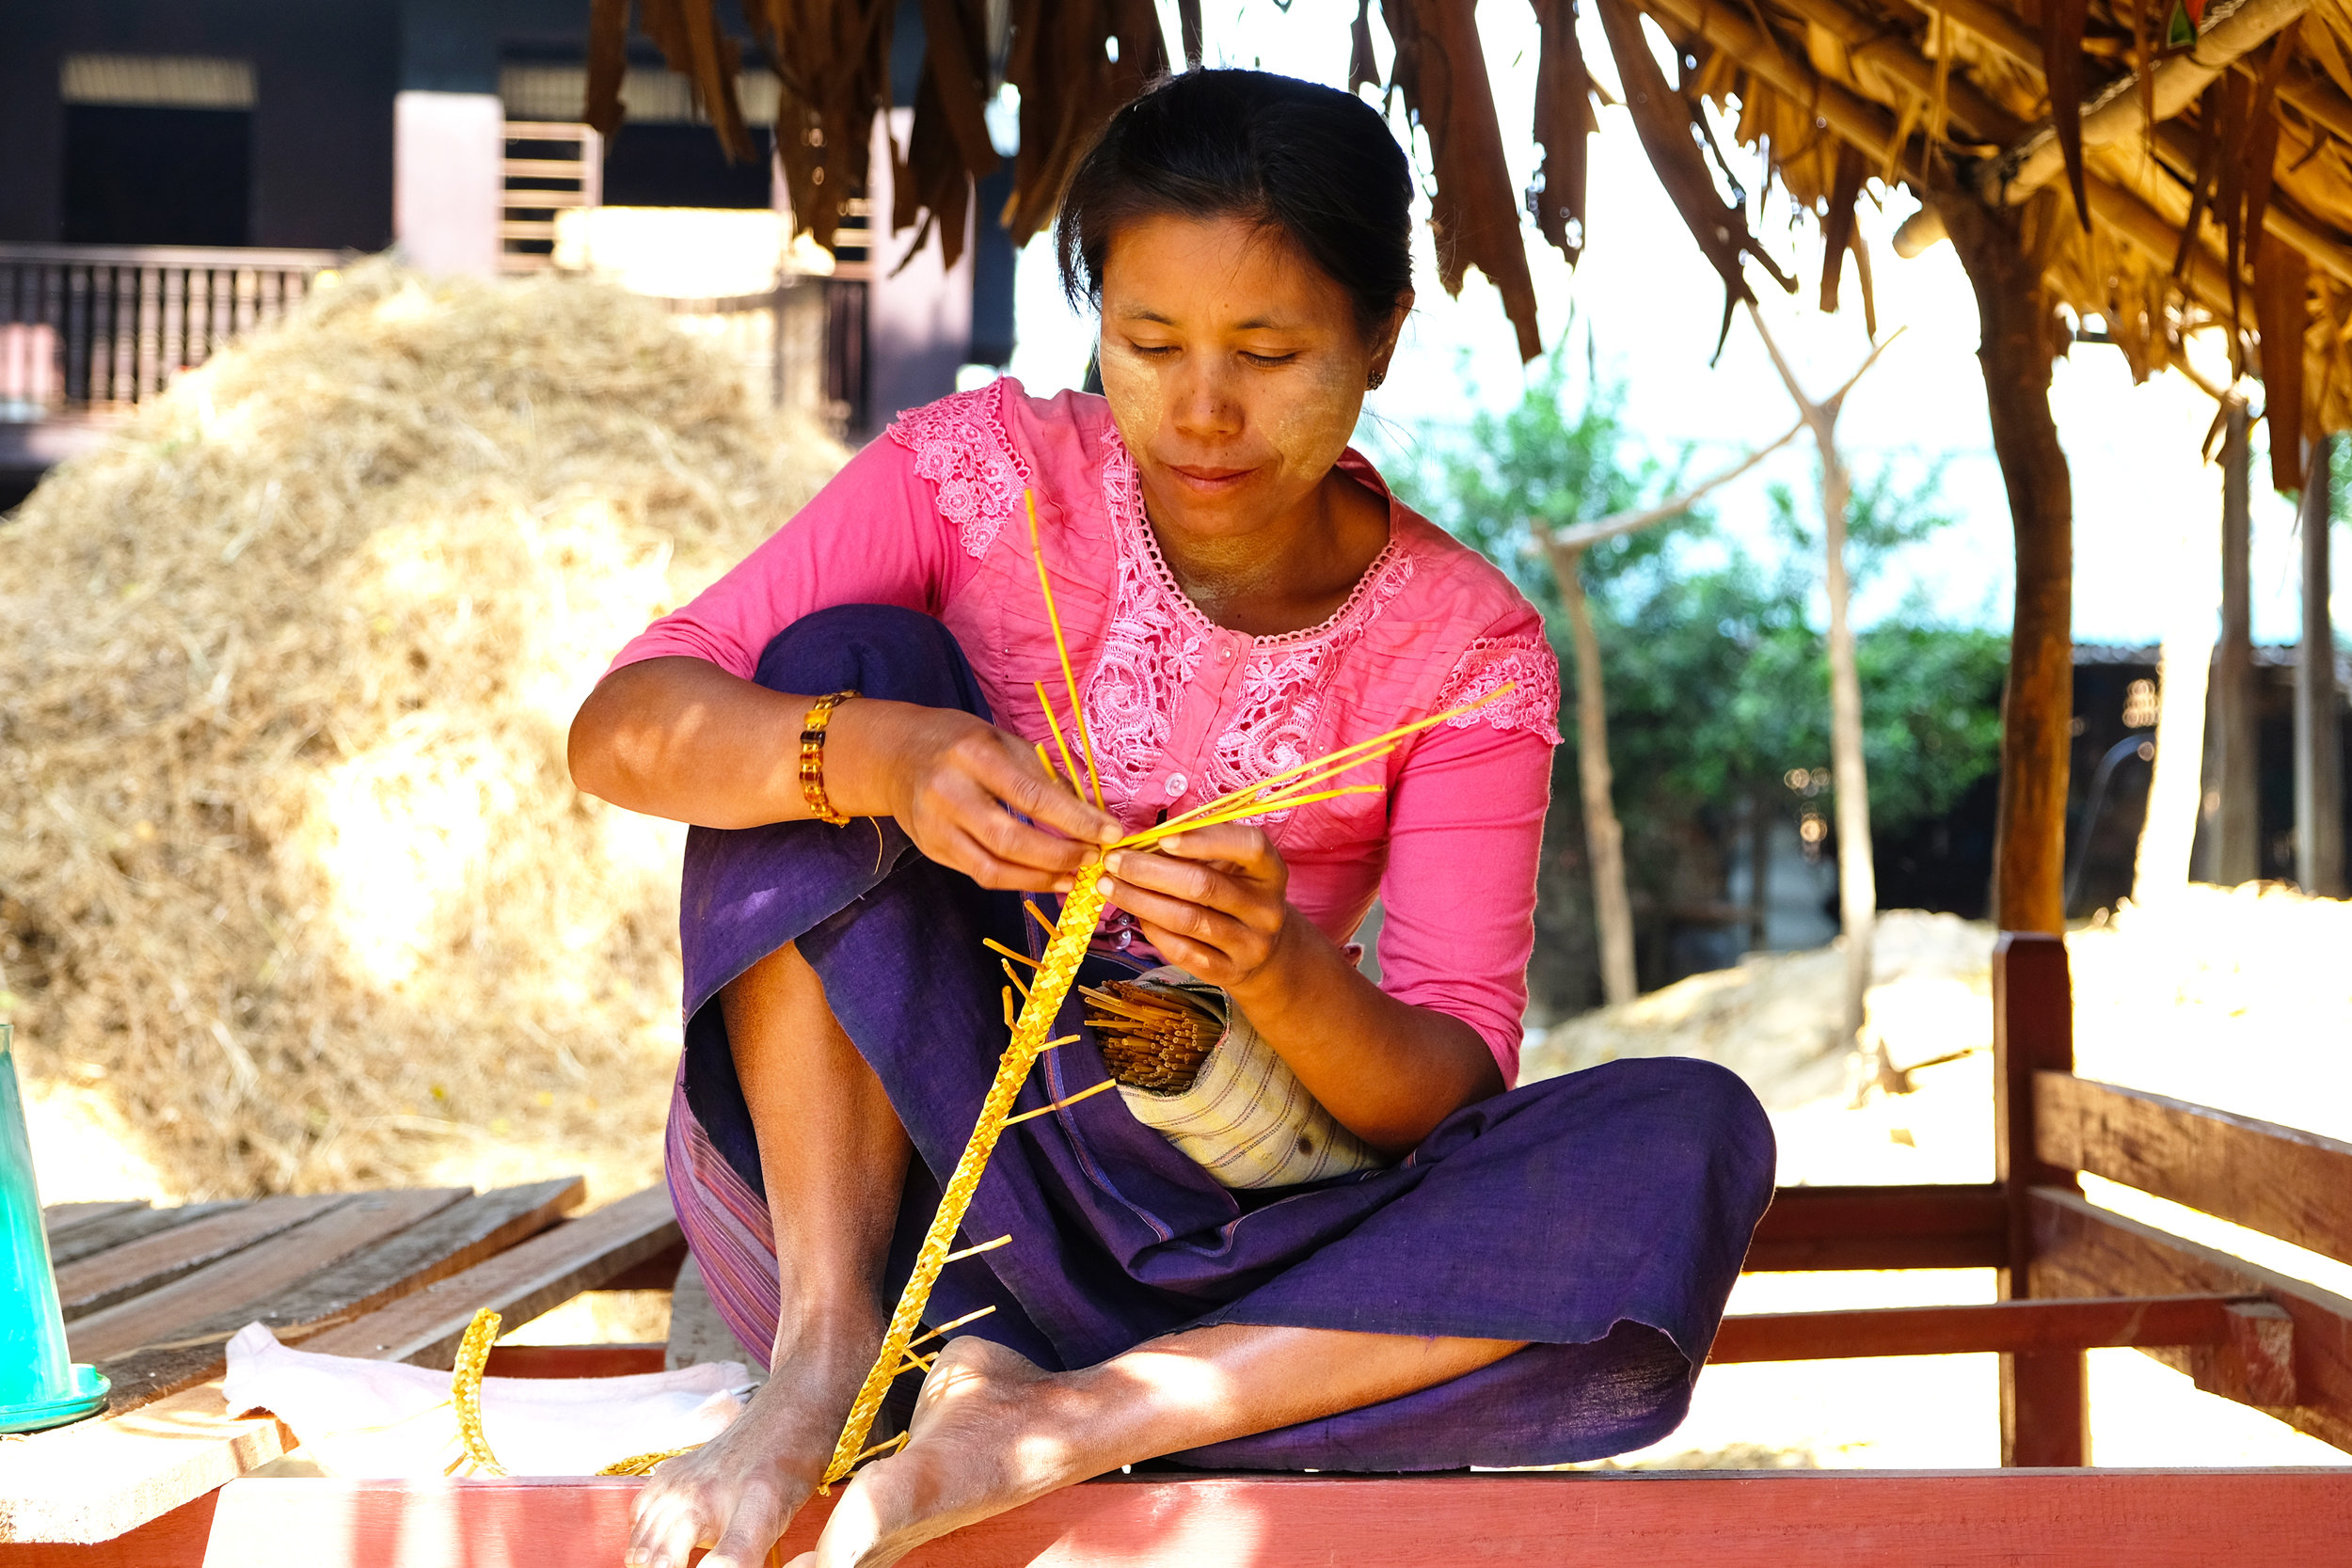 Woman weaving straw for a hat